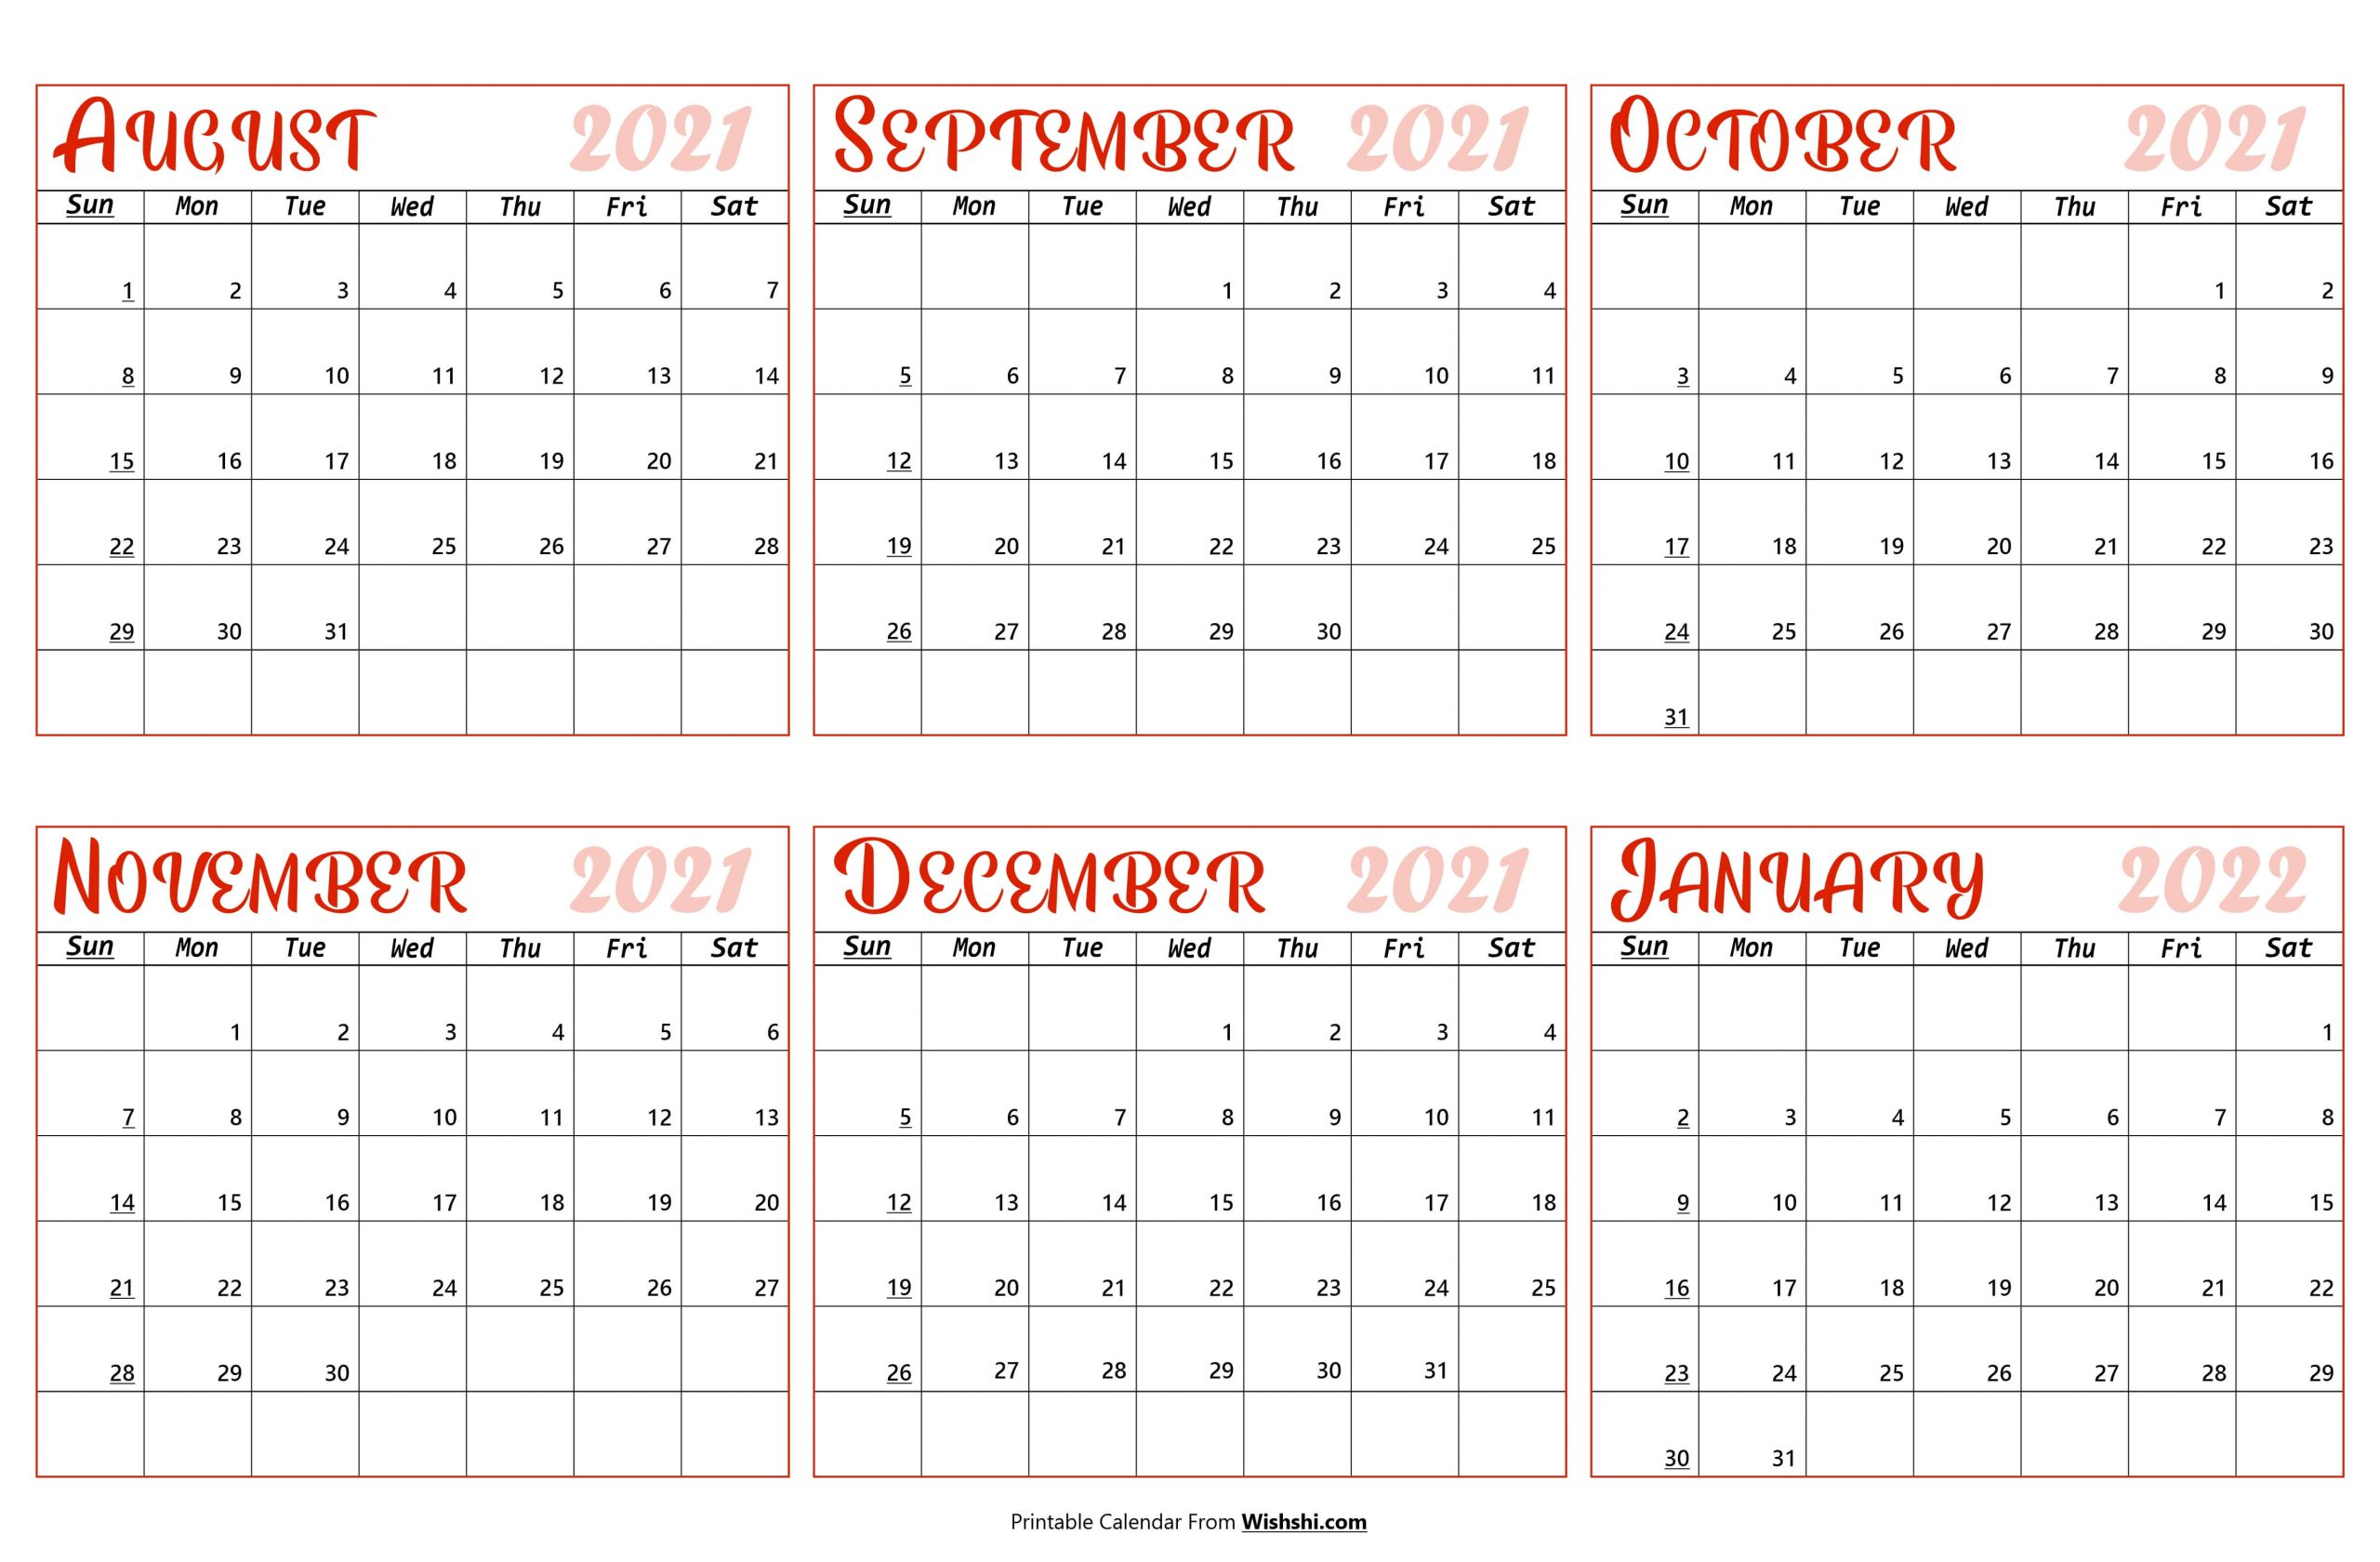 2021 August to January 2022 Calendar scaled